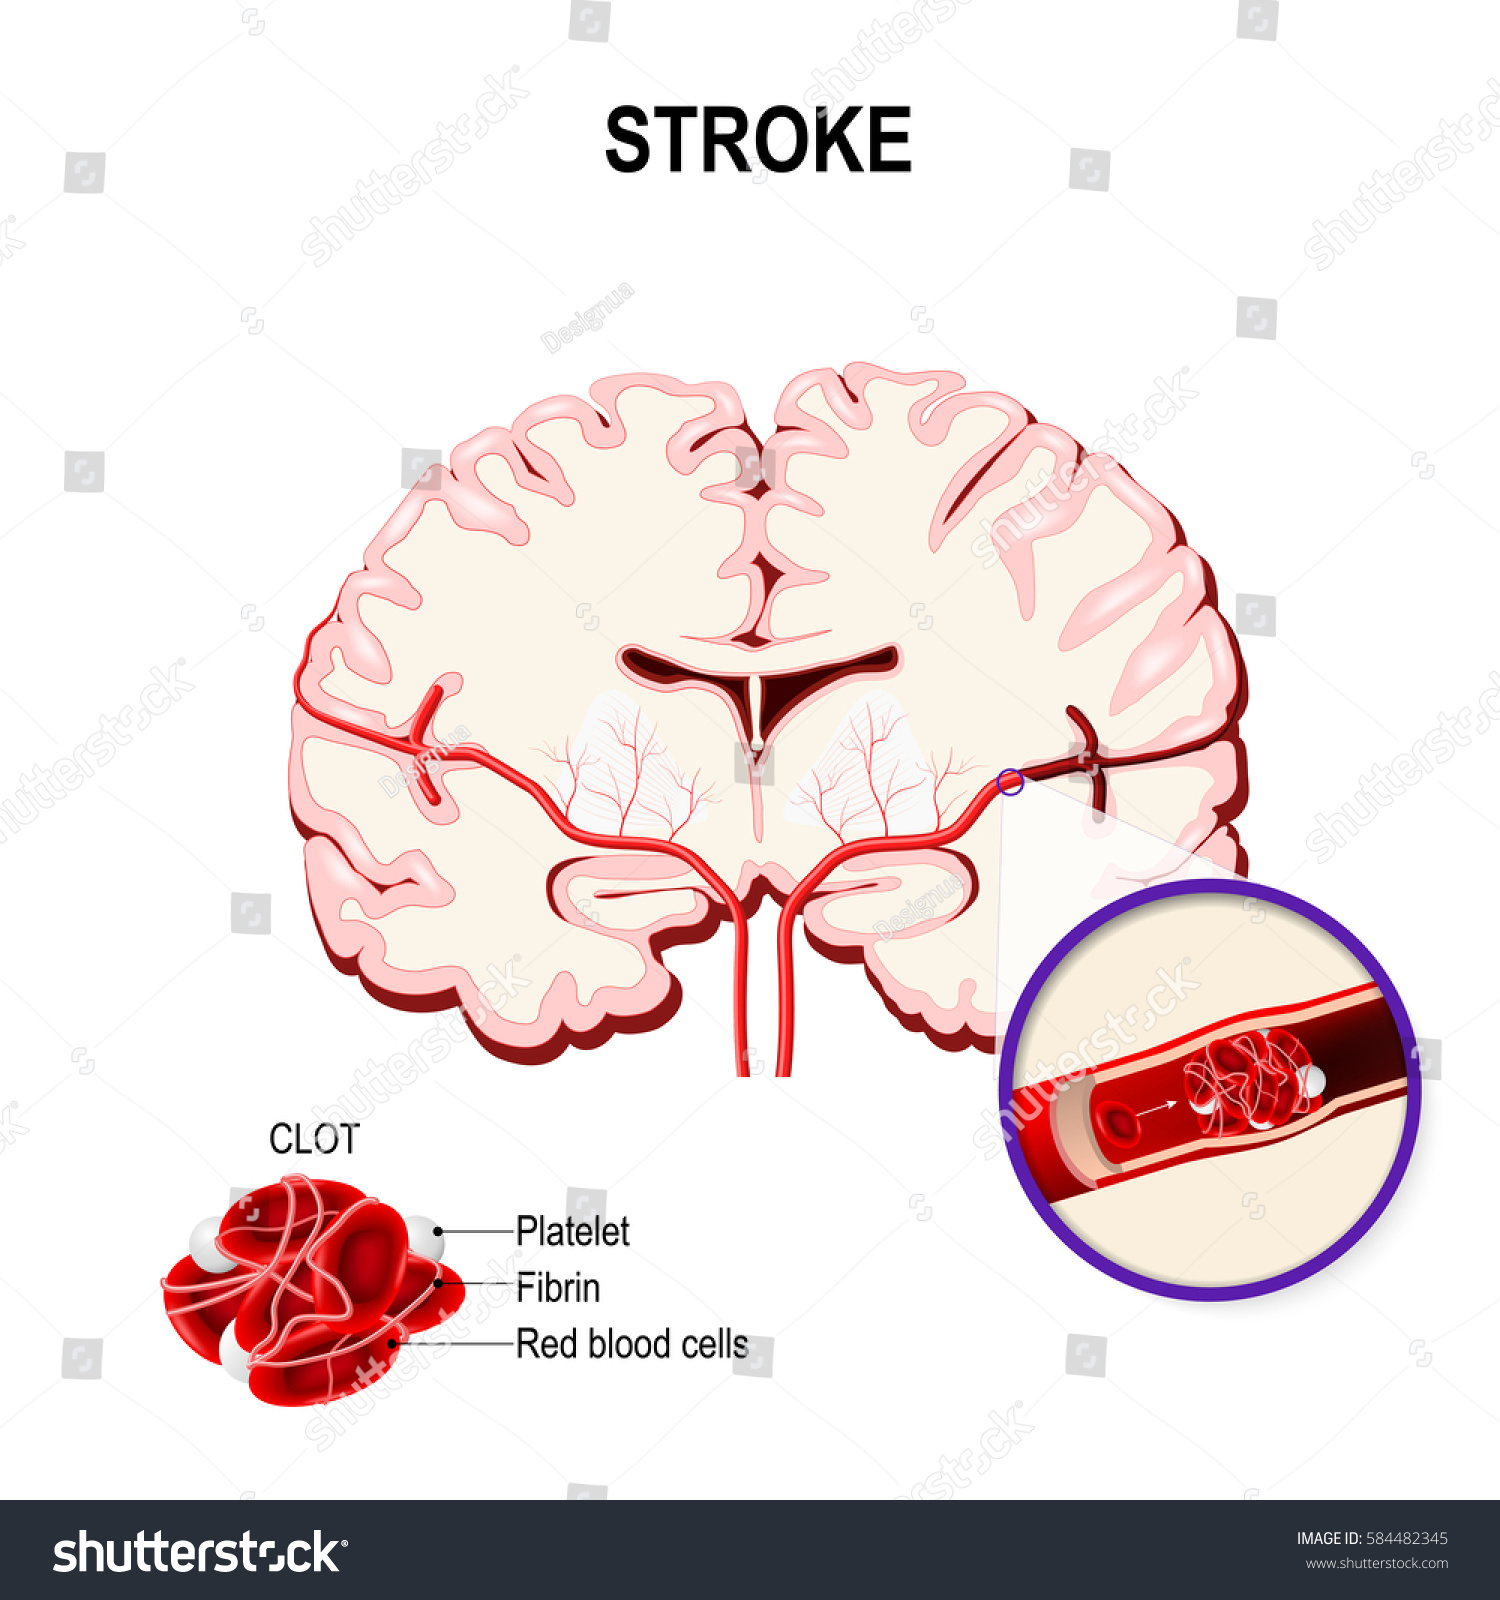 Online Image & Photo Editor  Shutterstock Editor. Eps Signs Of Stroke. Stop And Go Signs. Burmese Zodiac Signs. Scholarship Signs Of Stroke. Sunflower Signs Of Stroke. Sea Turtle Signs Of Stroke. Life Quote Signs Of Stroke. Carnival Signs